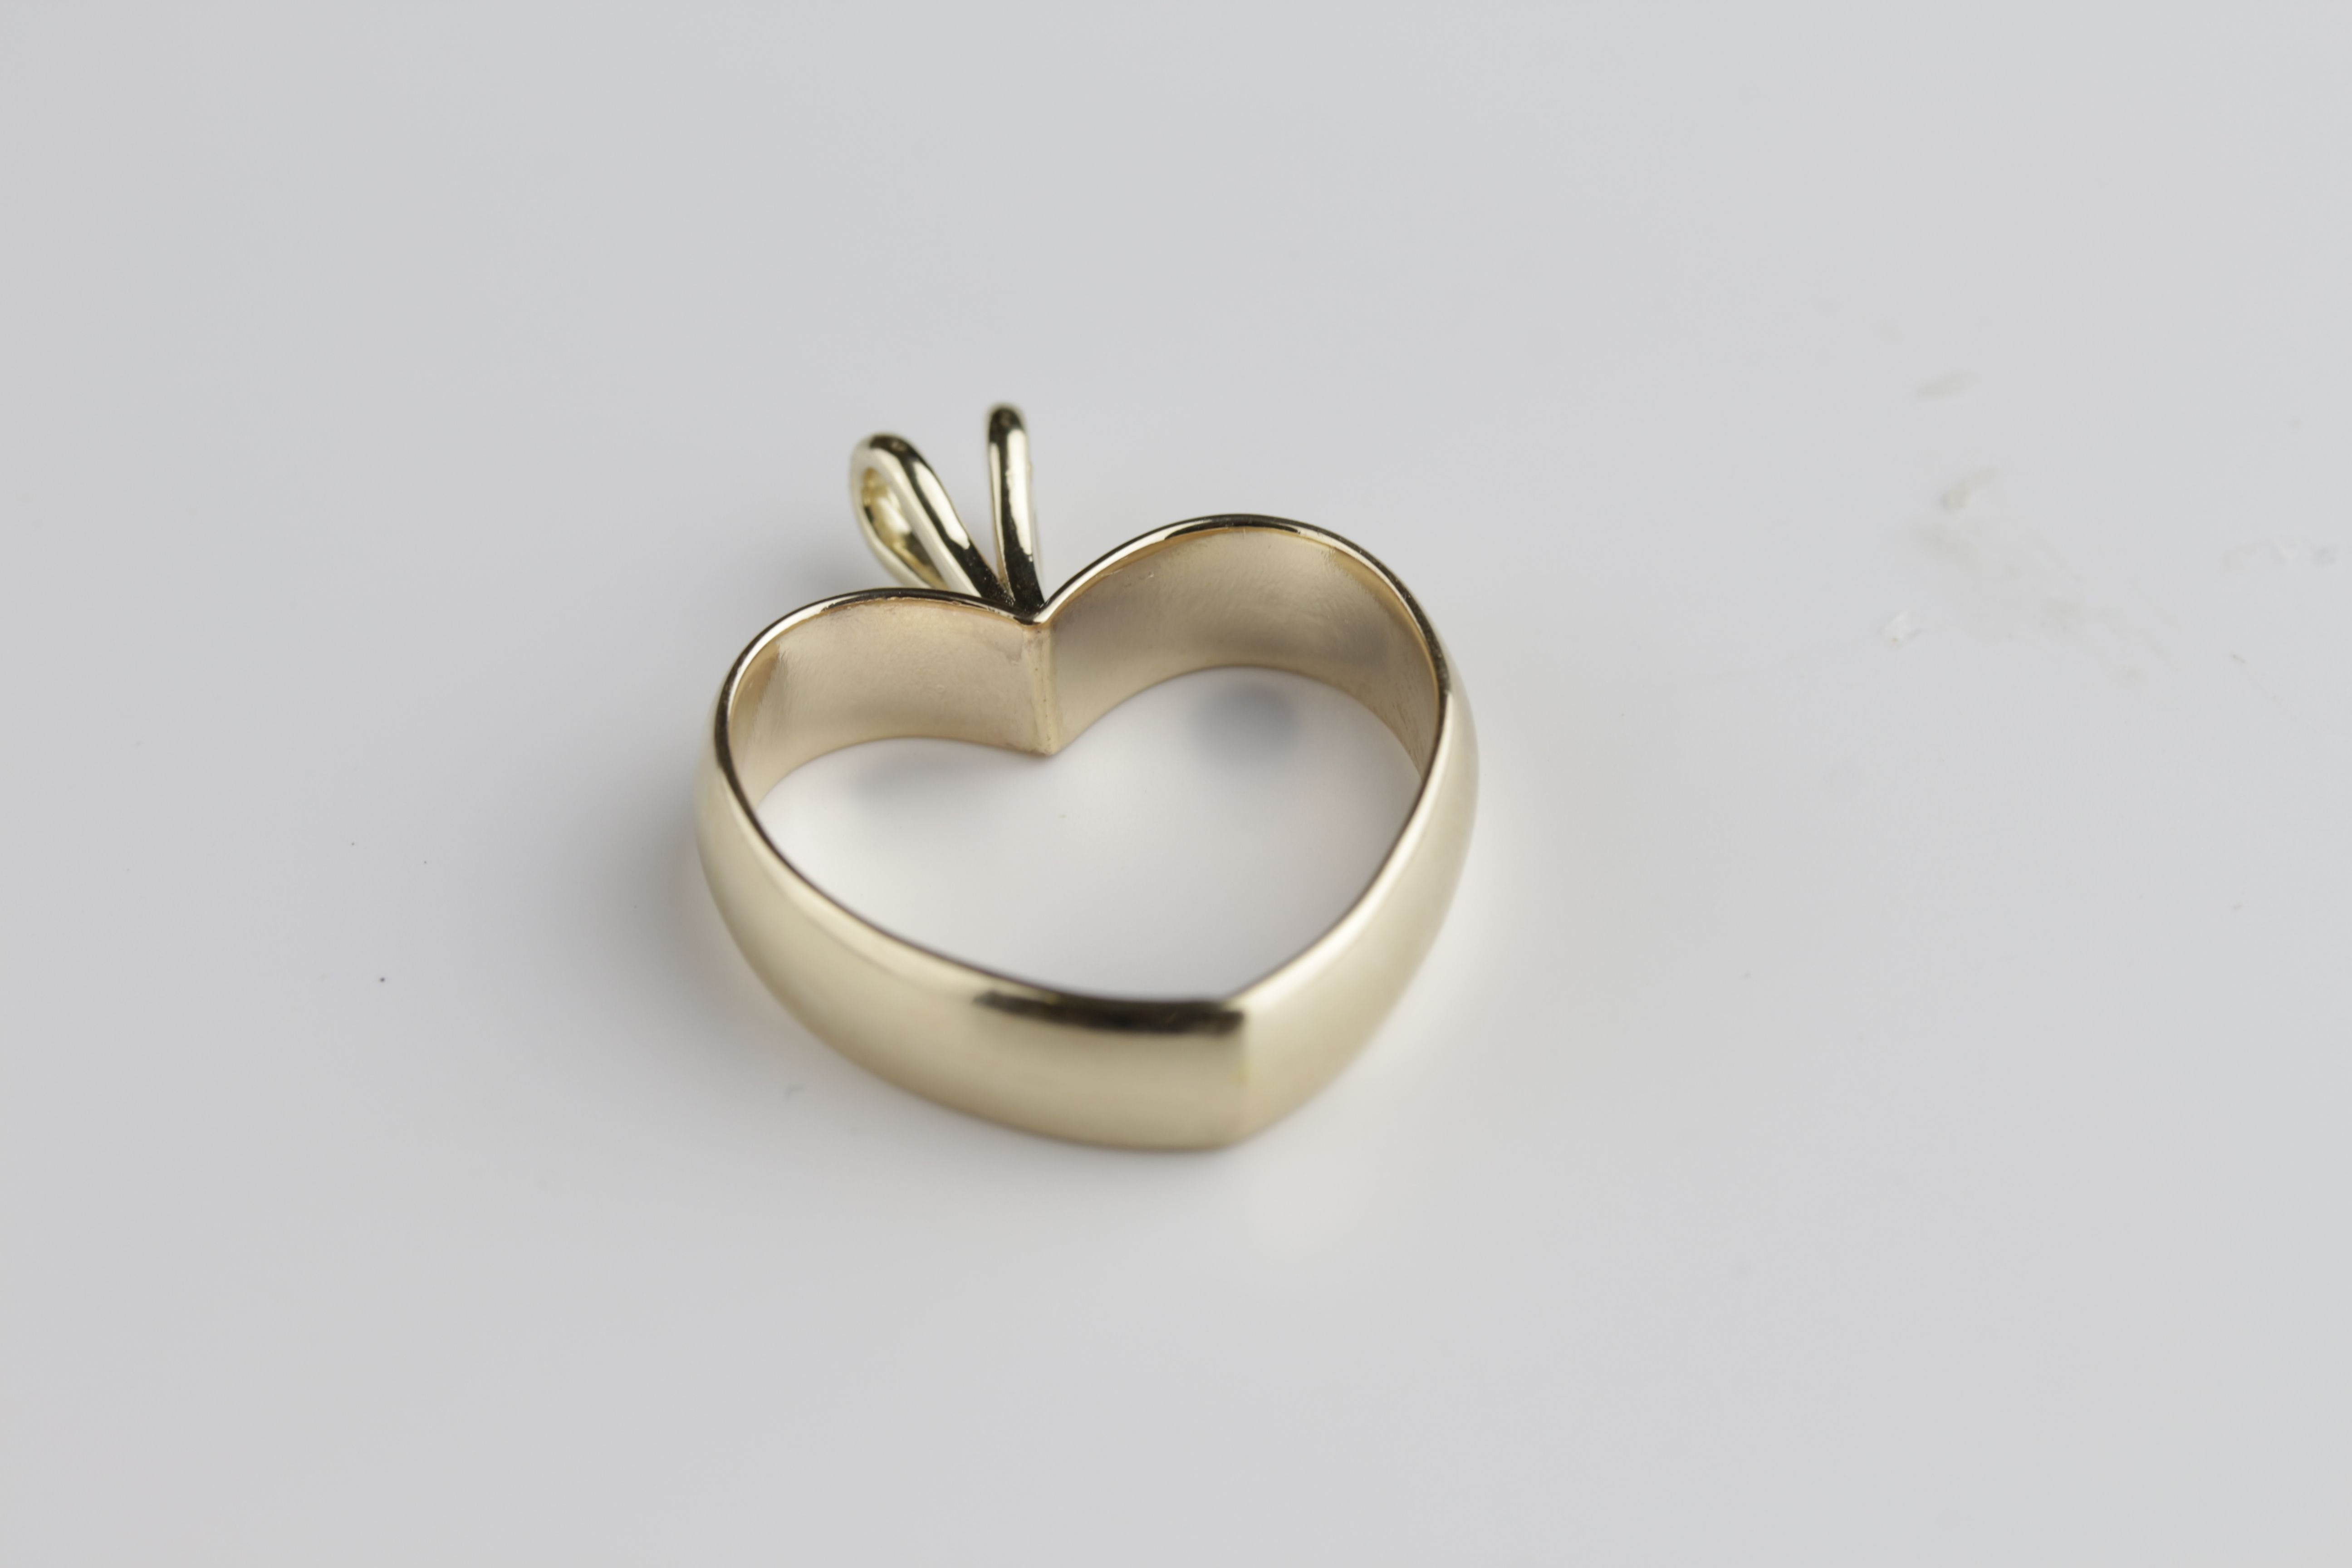 Beloved Wedding Band Made Into A Necklace Pendant Wedding Ring